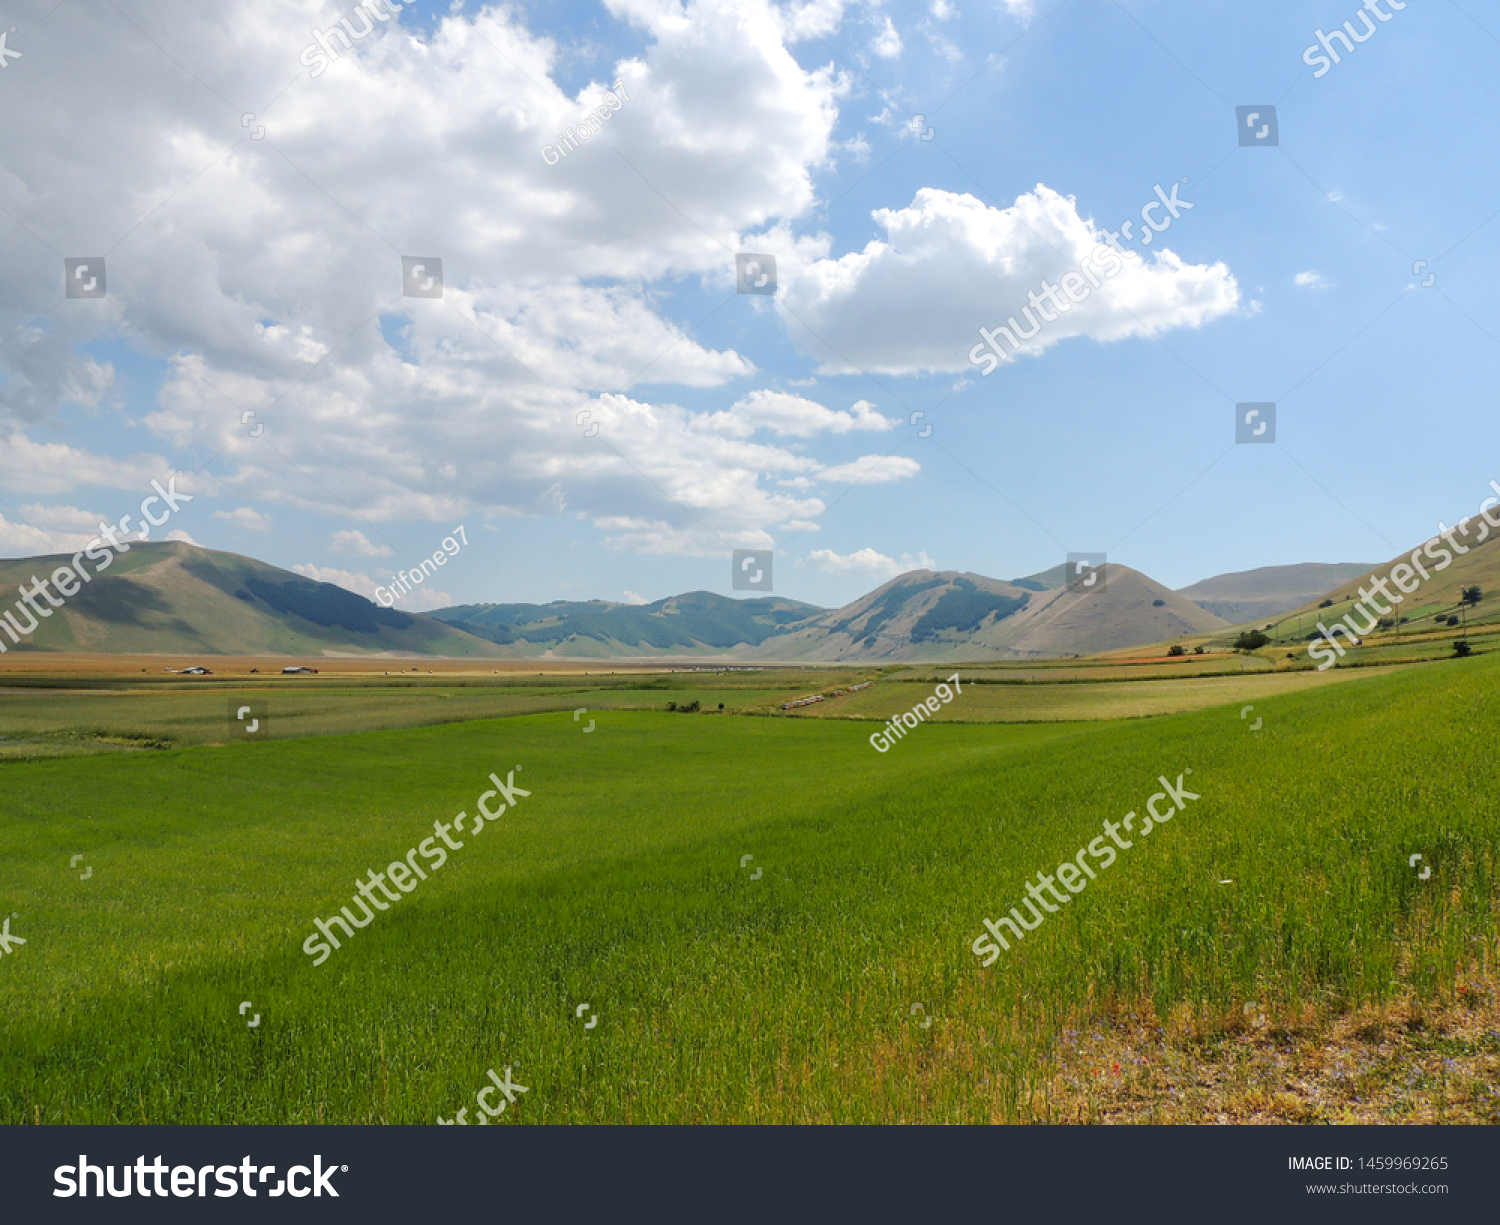 stock-photo-landscape-of-park-of-sibilli